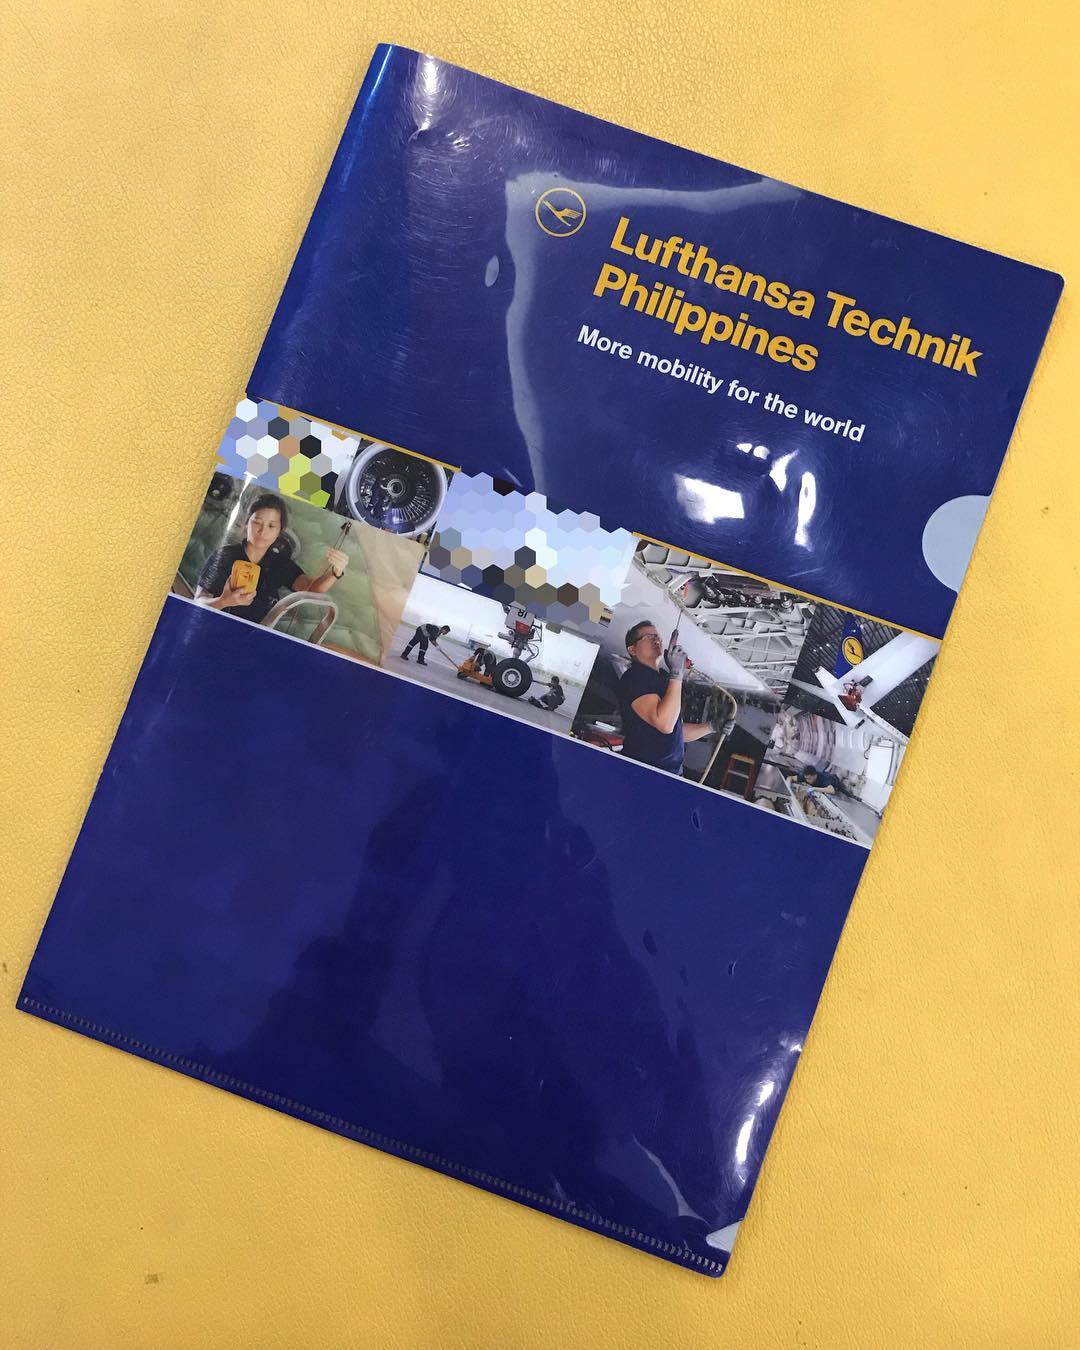 Bump into some of our old output shots printed on a plastic folder while shooting here at the same company.  #work #commercial #photography #photoshoot #shoot #photo #asia #manila #philippines #lufthansa #imagesmithph #bts #behindthescenes #lufthansa #corporate